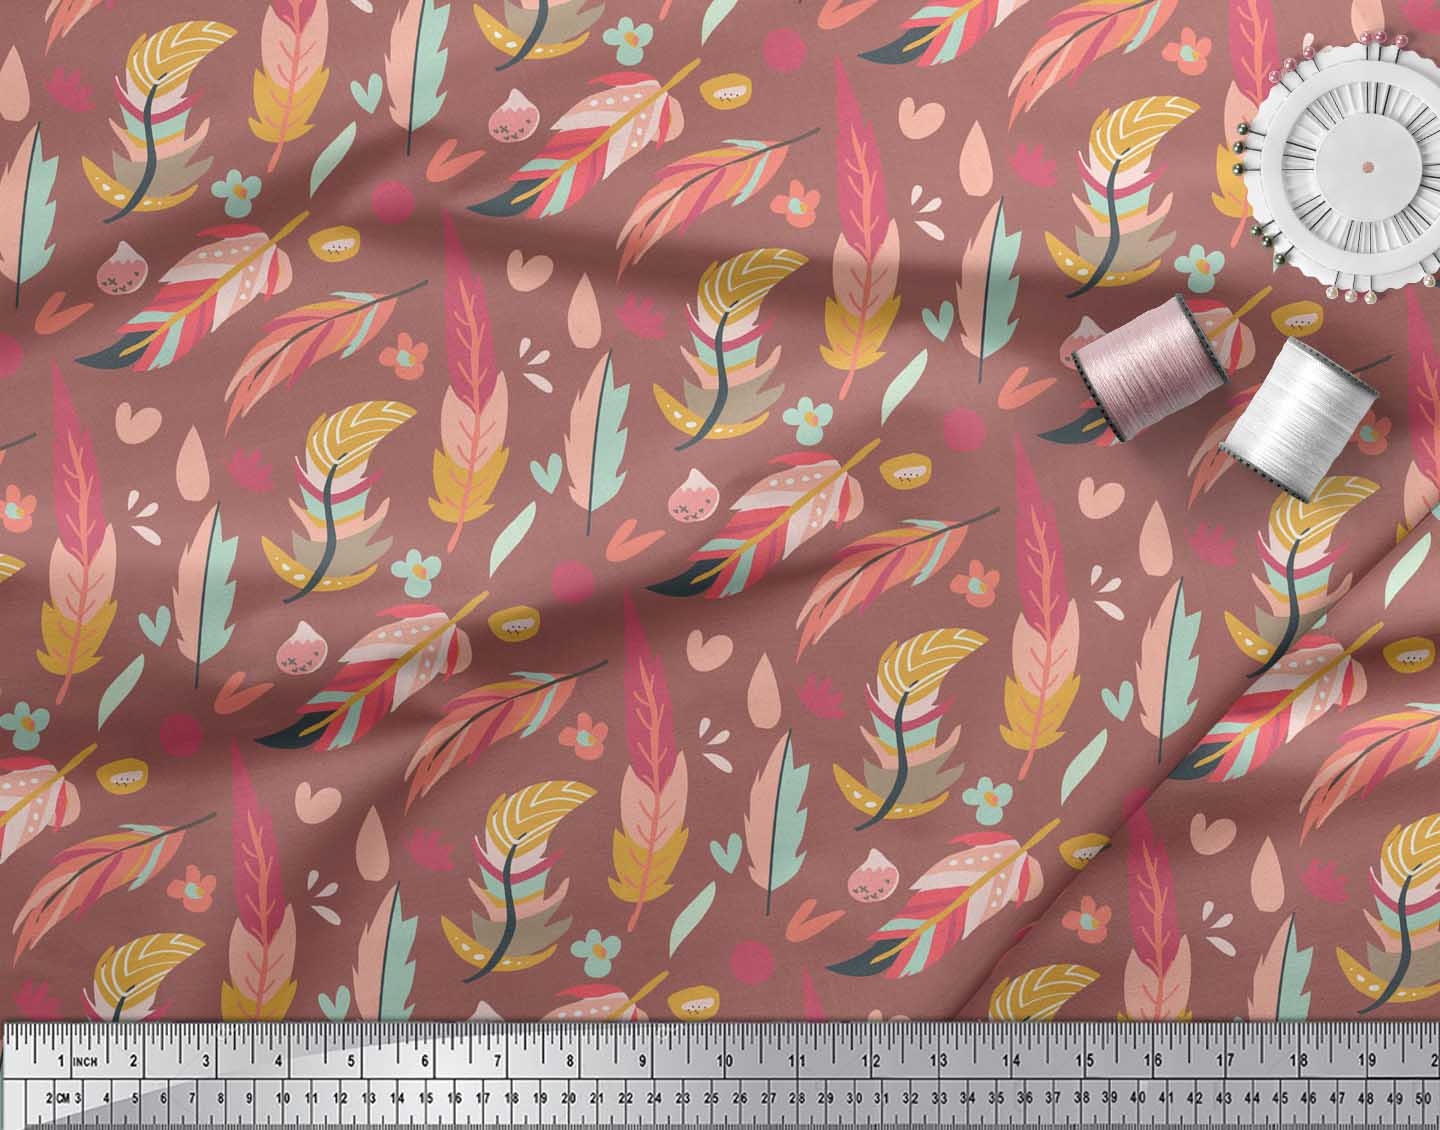 Soimoi-Brown-Cotton-Poplin-Fabric-Artistic-Feather-Print-Fabric-dkV thumbnail 4